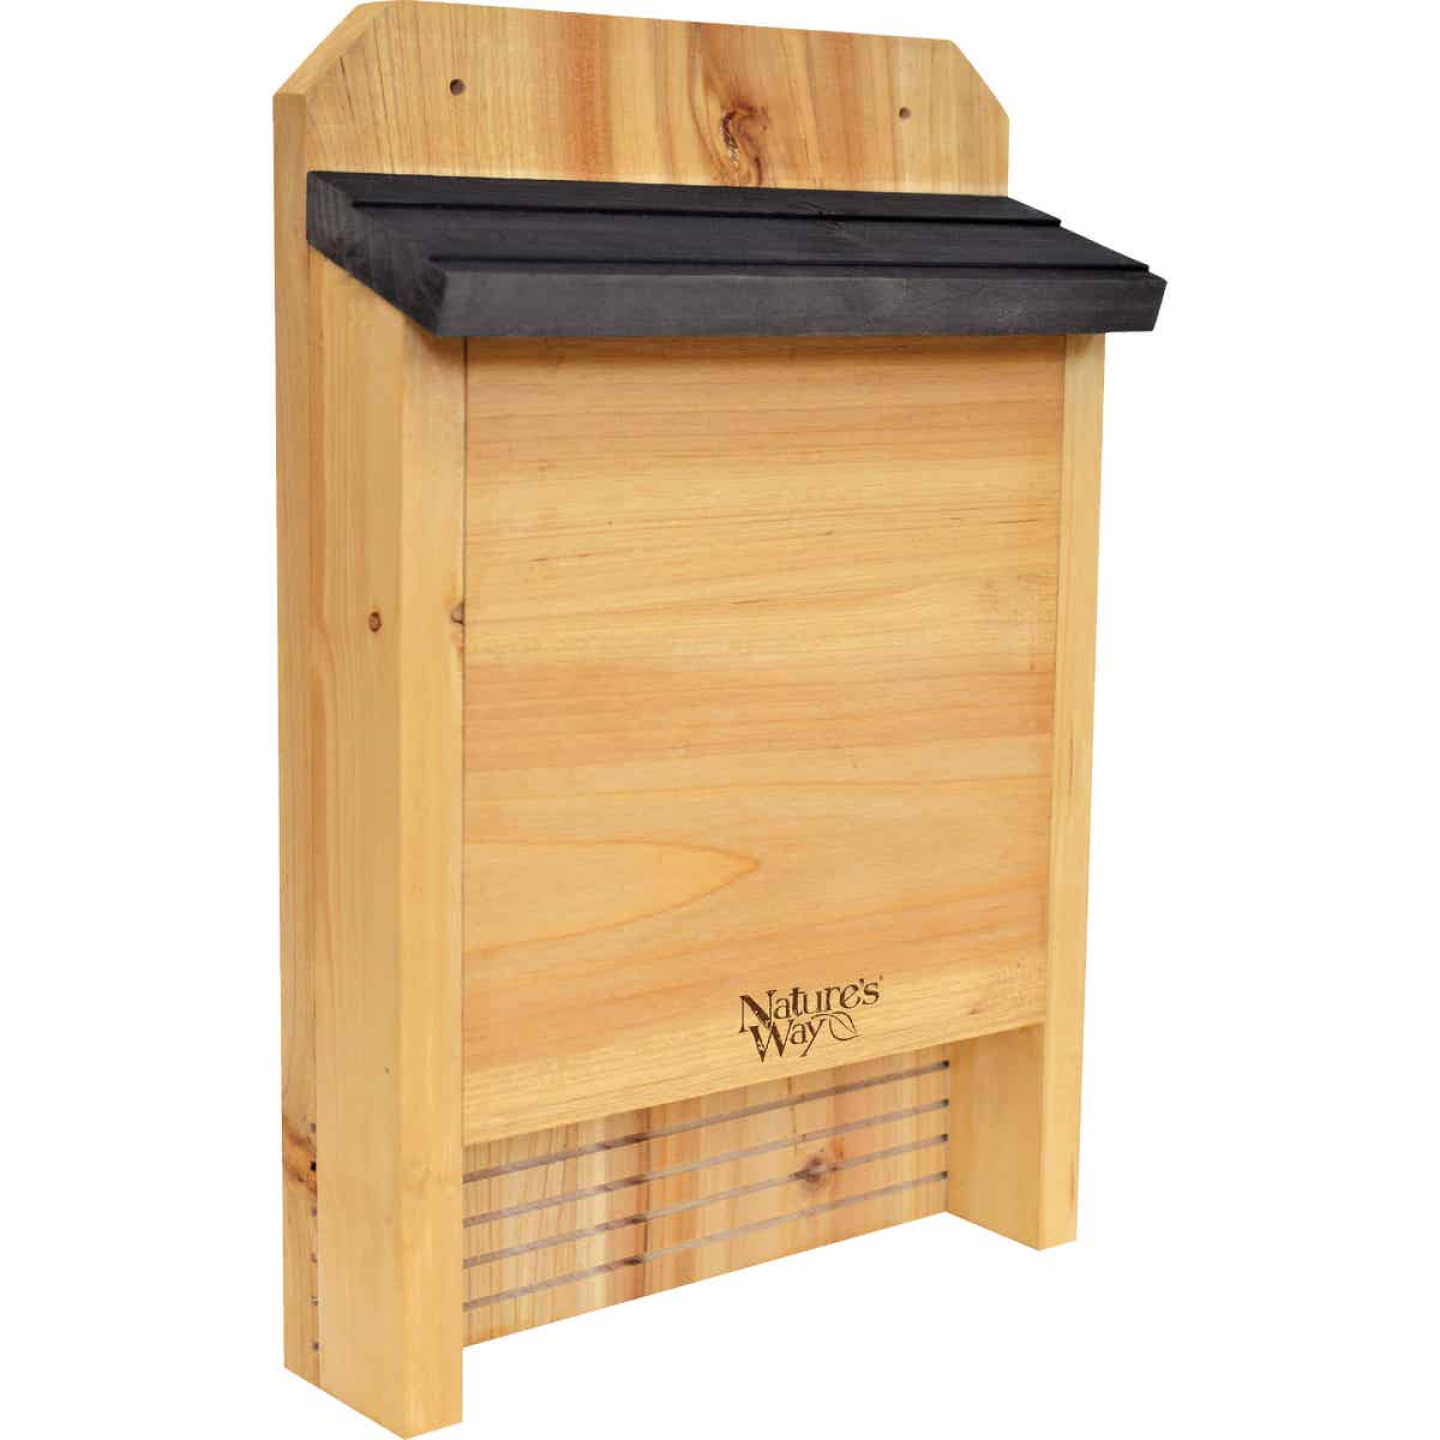 Nature's Way 10 In. W. x 15 In. H. x 3.5 In. D. Single Chamber Cedar Bat House Image 1